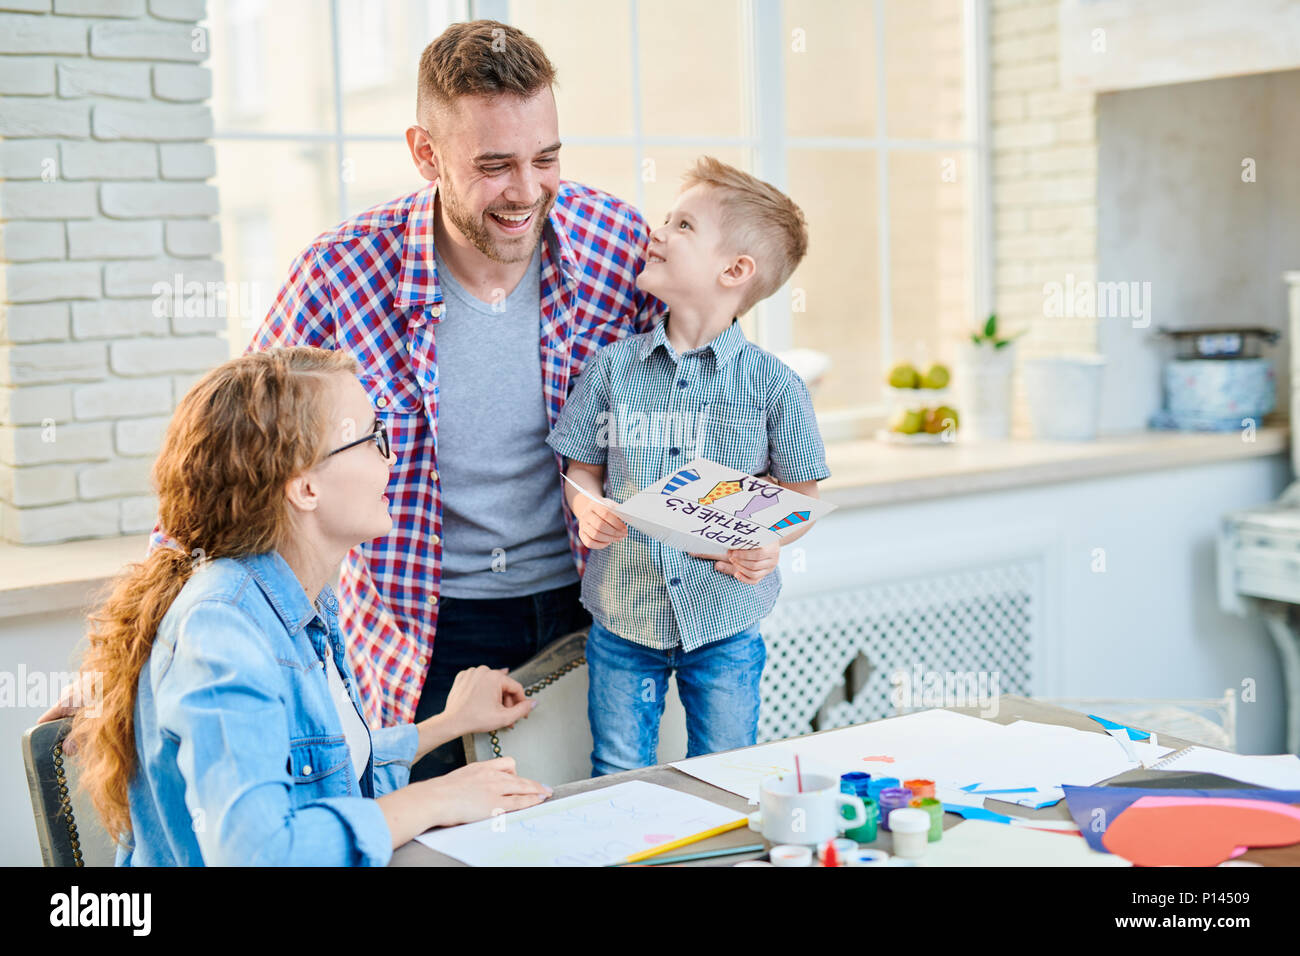 Adorable Family Celebrating Fathers Day - Stock Image